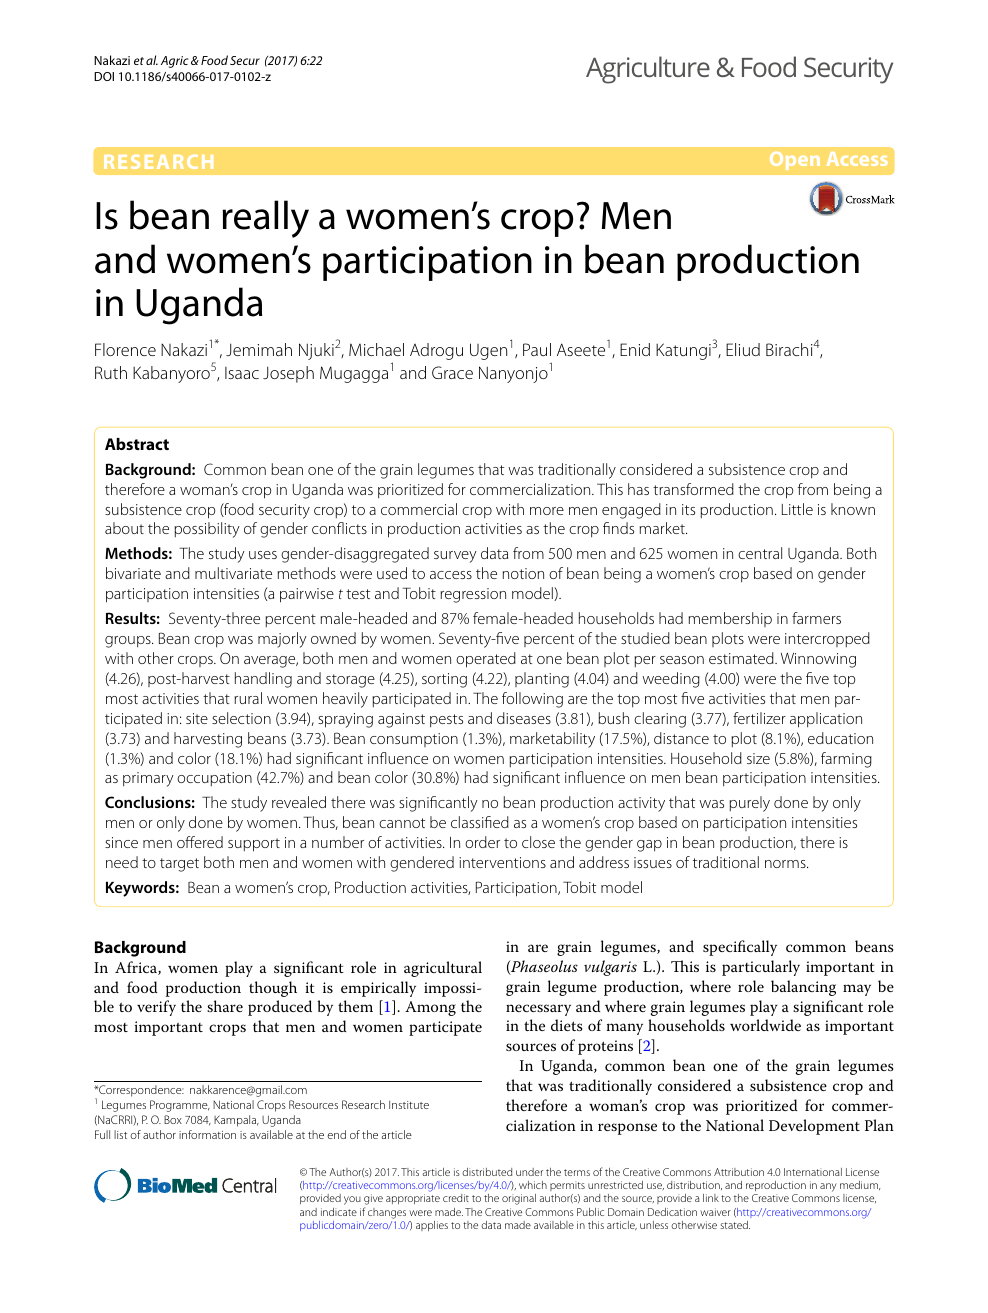 Is bean really a women's crop? Men and women's participation